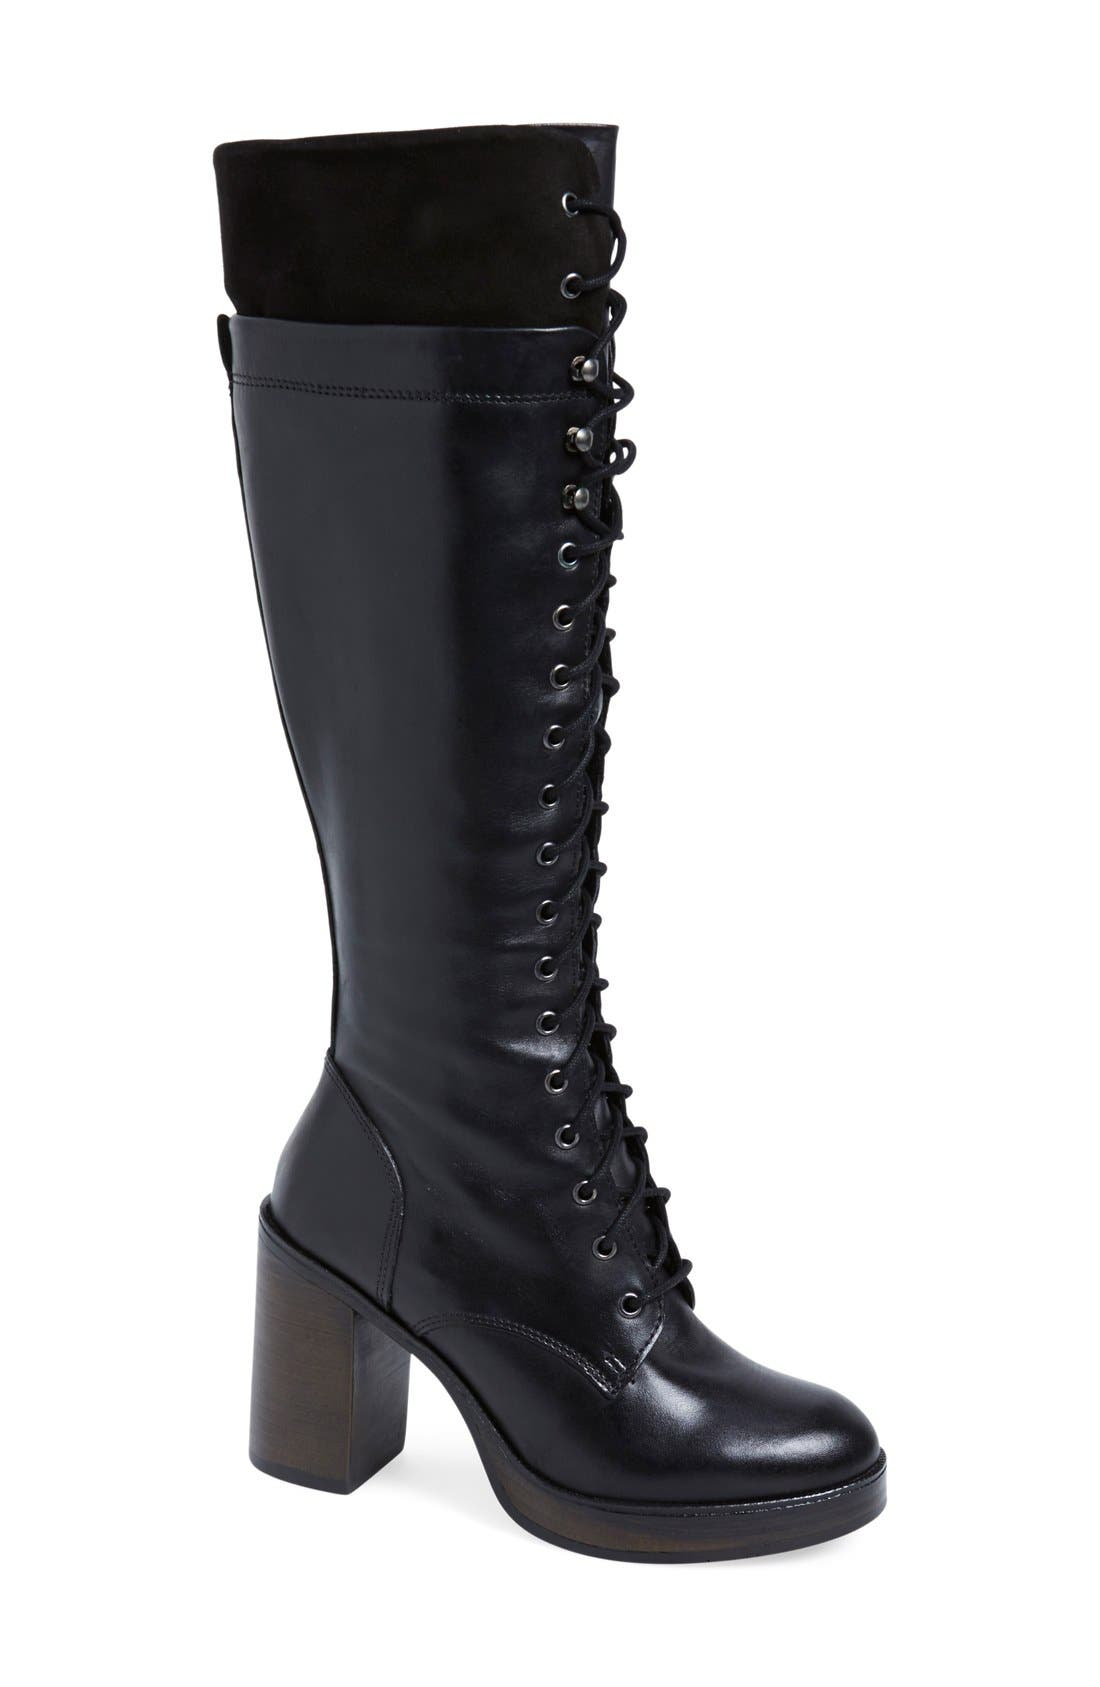 Main Image - Steve Madden 'Nitefall' Tall Lace Up Boot (Women)